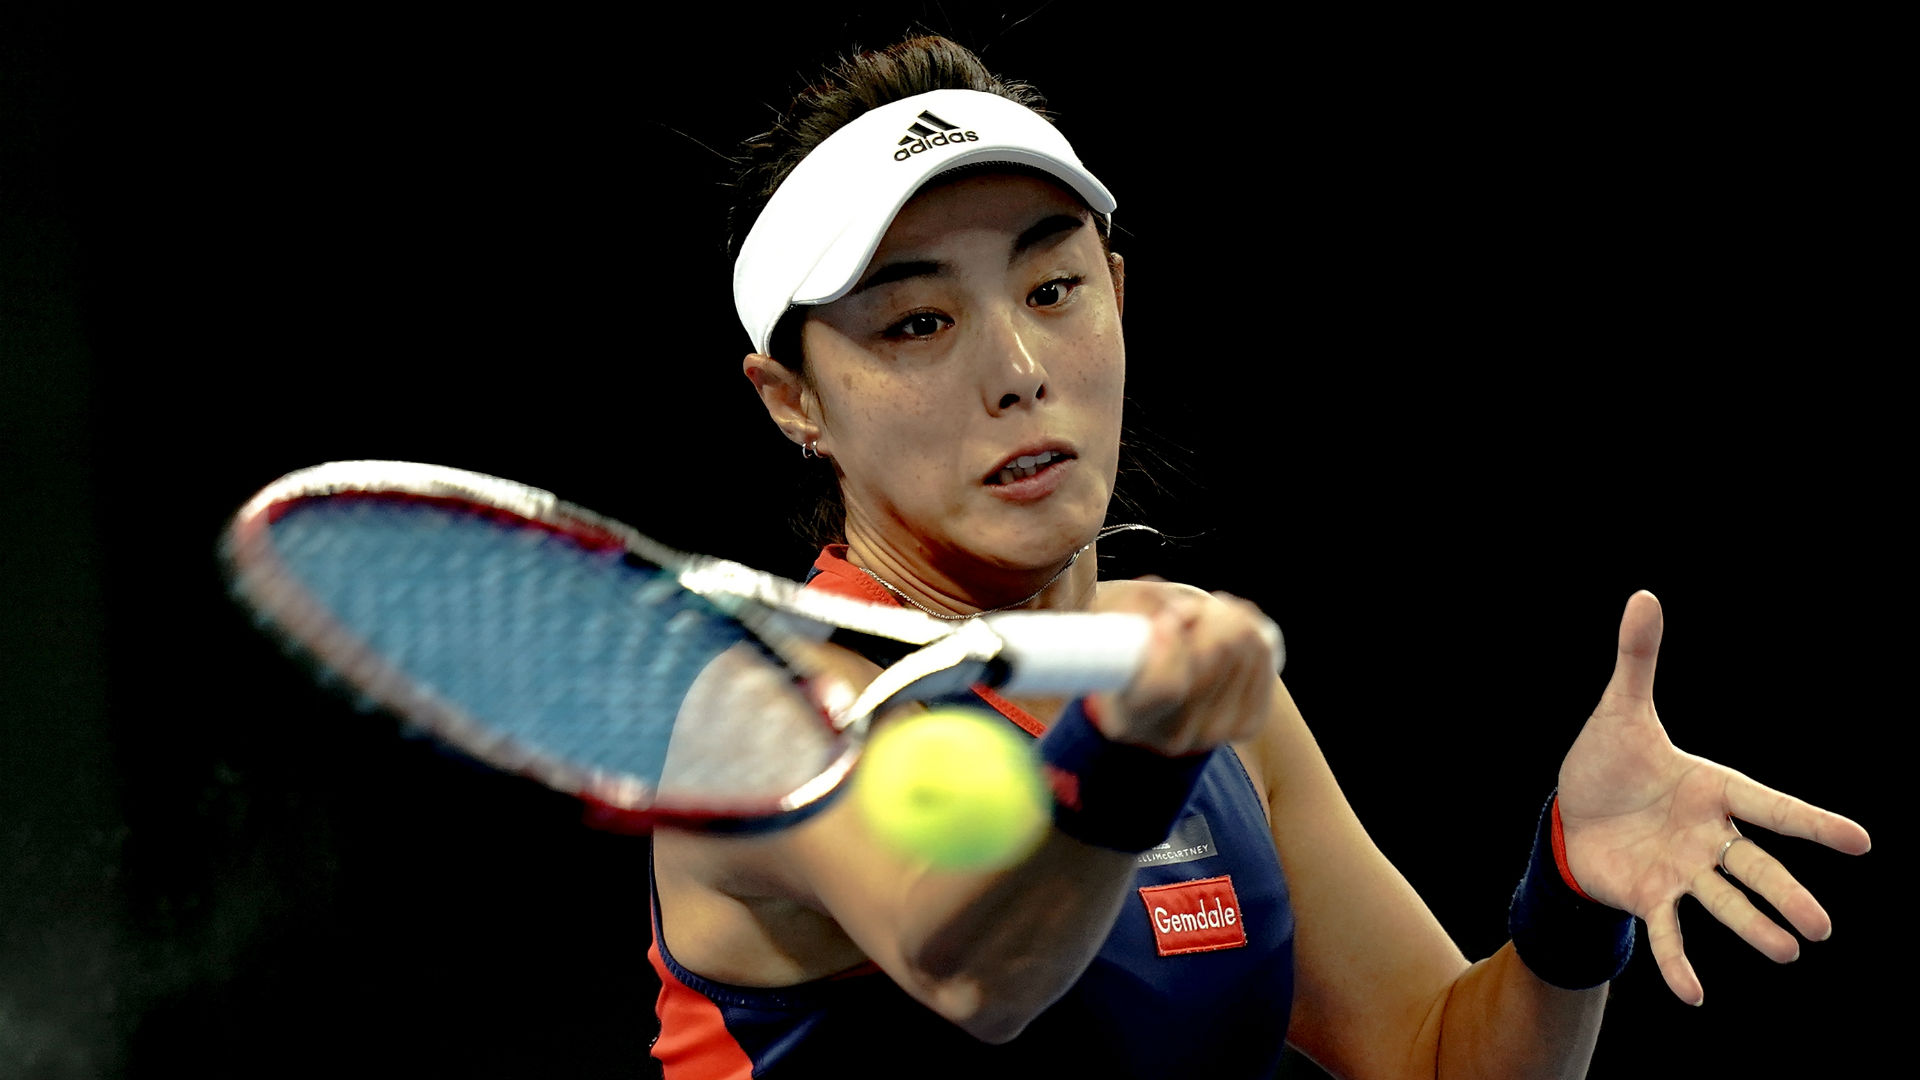 Wang Qiang recovered from a first-set bagel to prevail 0-6 6-1 6-4 against Russian lucky loser Anna Blinkova on Thursday.